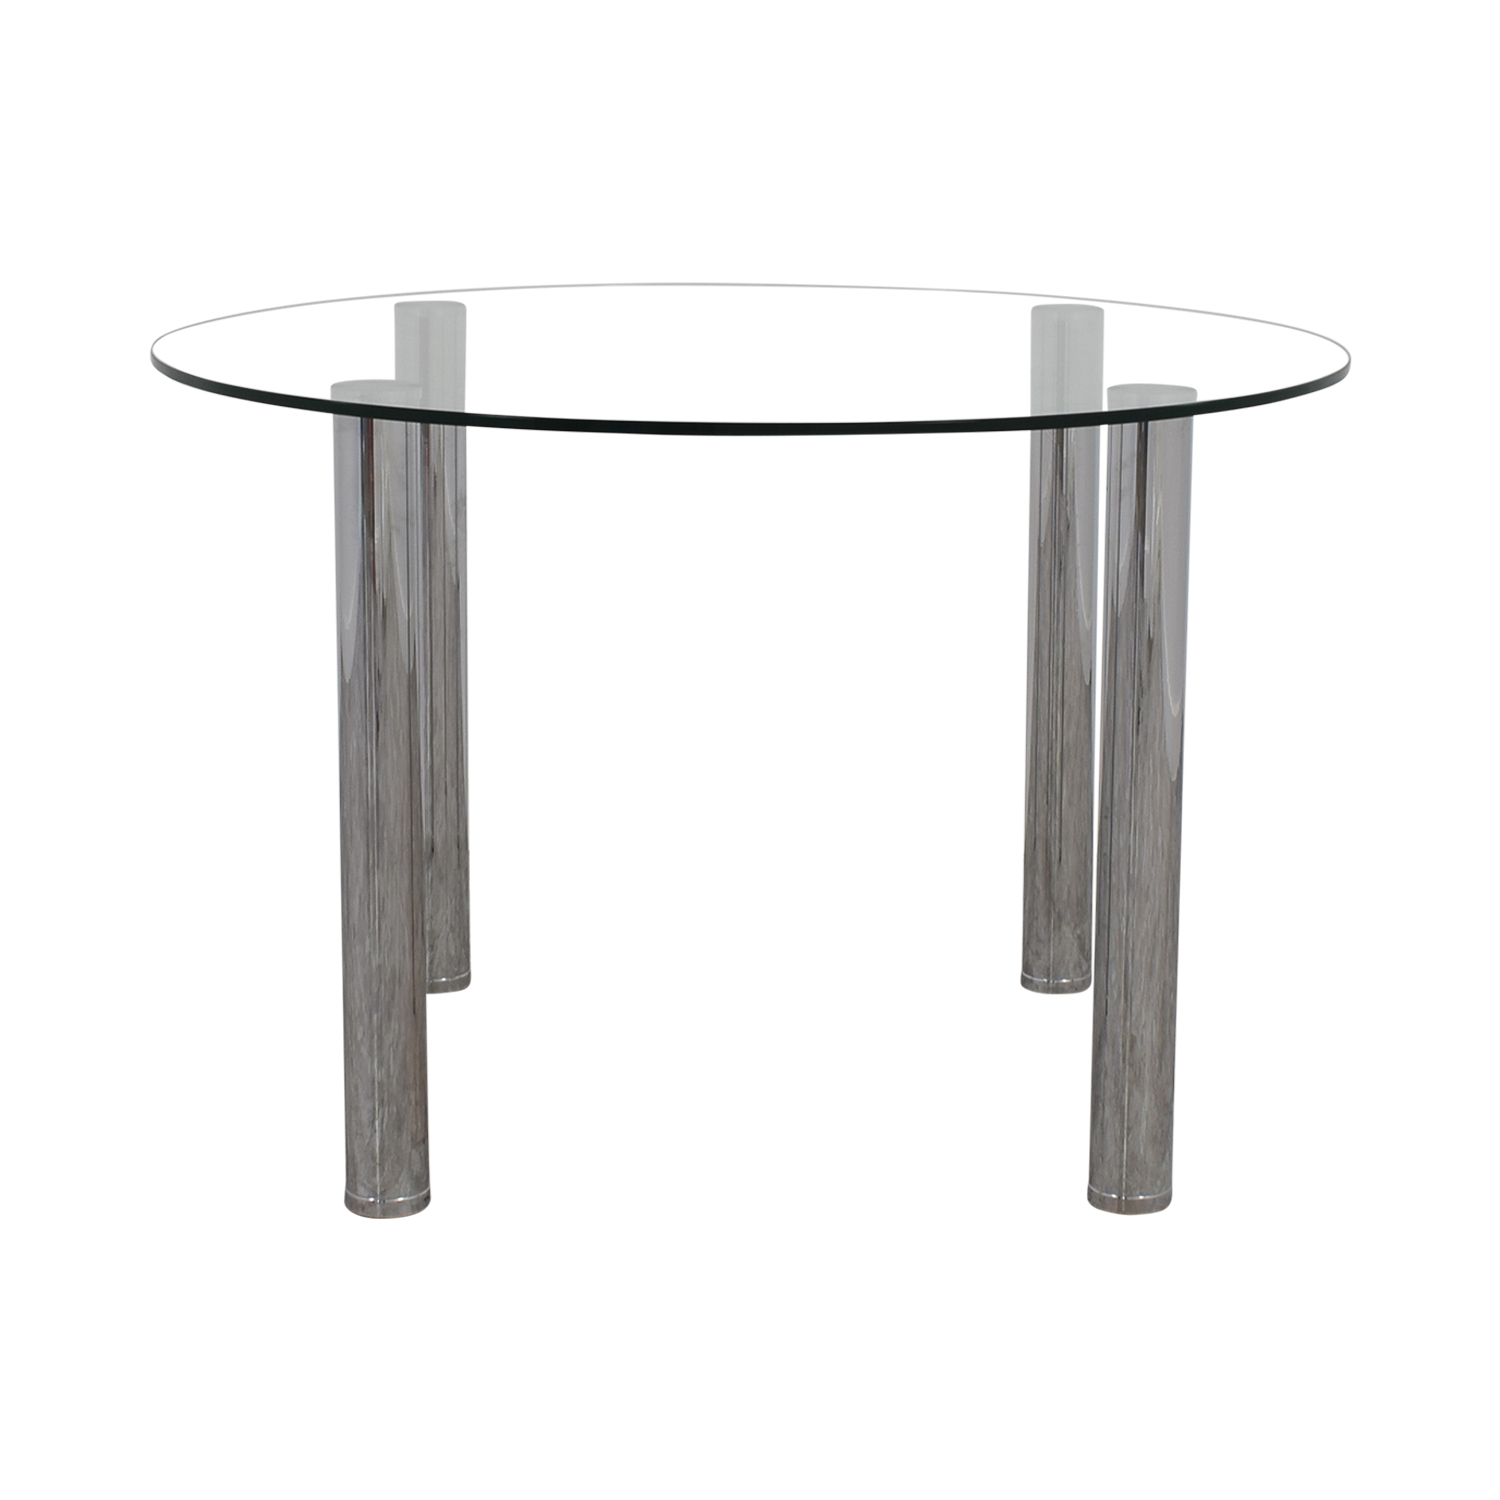 buy Round Glass and Chrome Table online